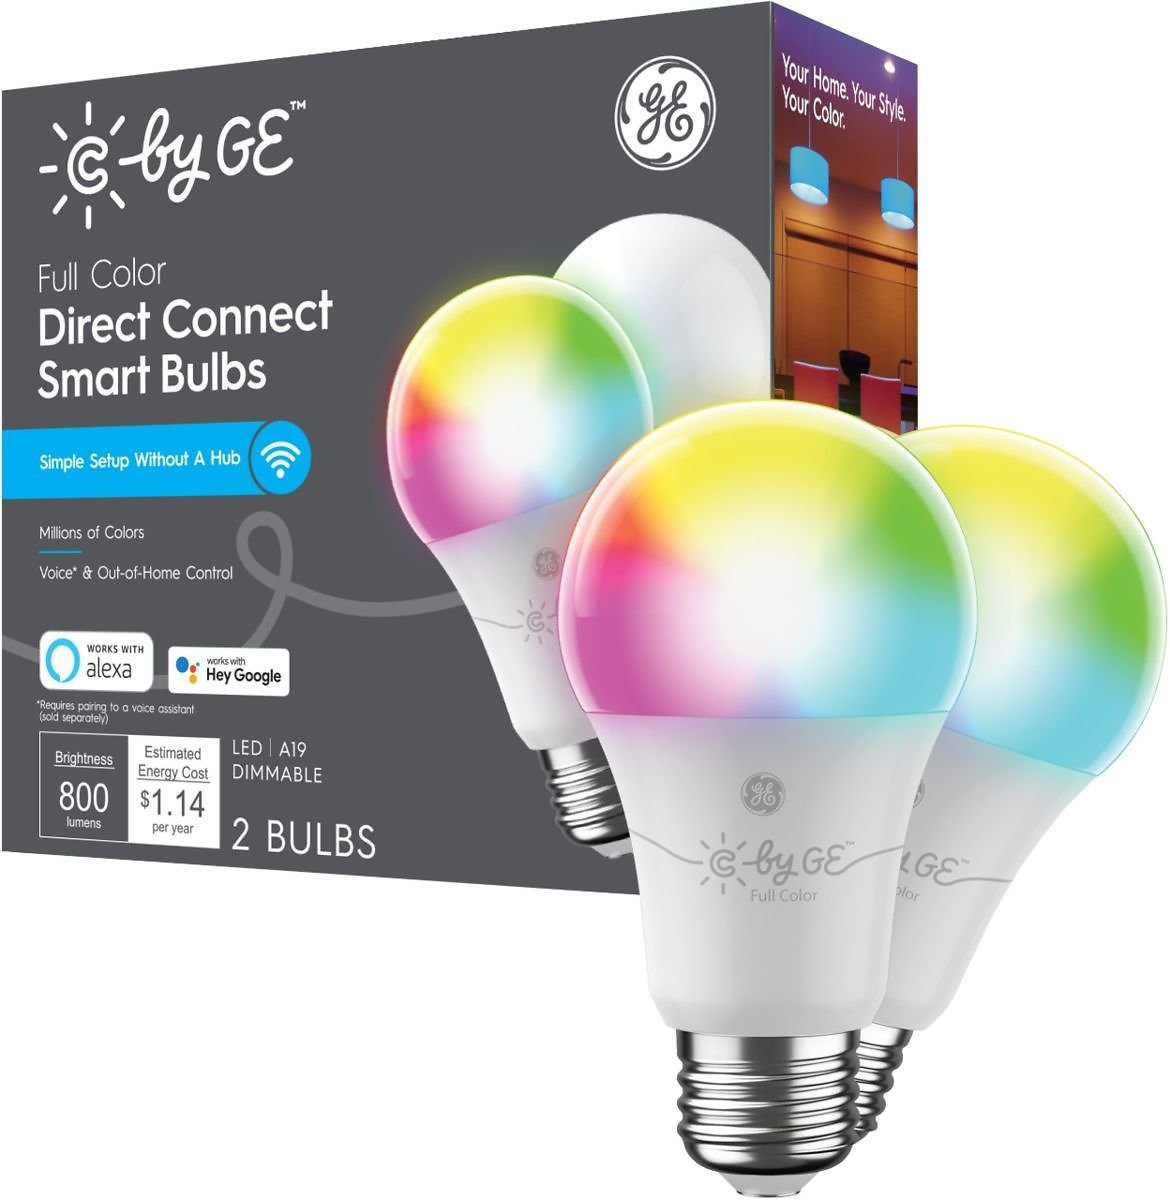 C by GE Direct Connect Light Bulbs